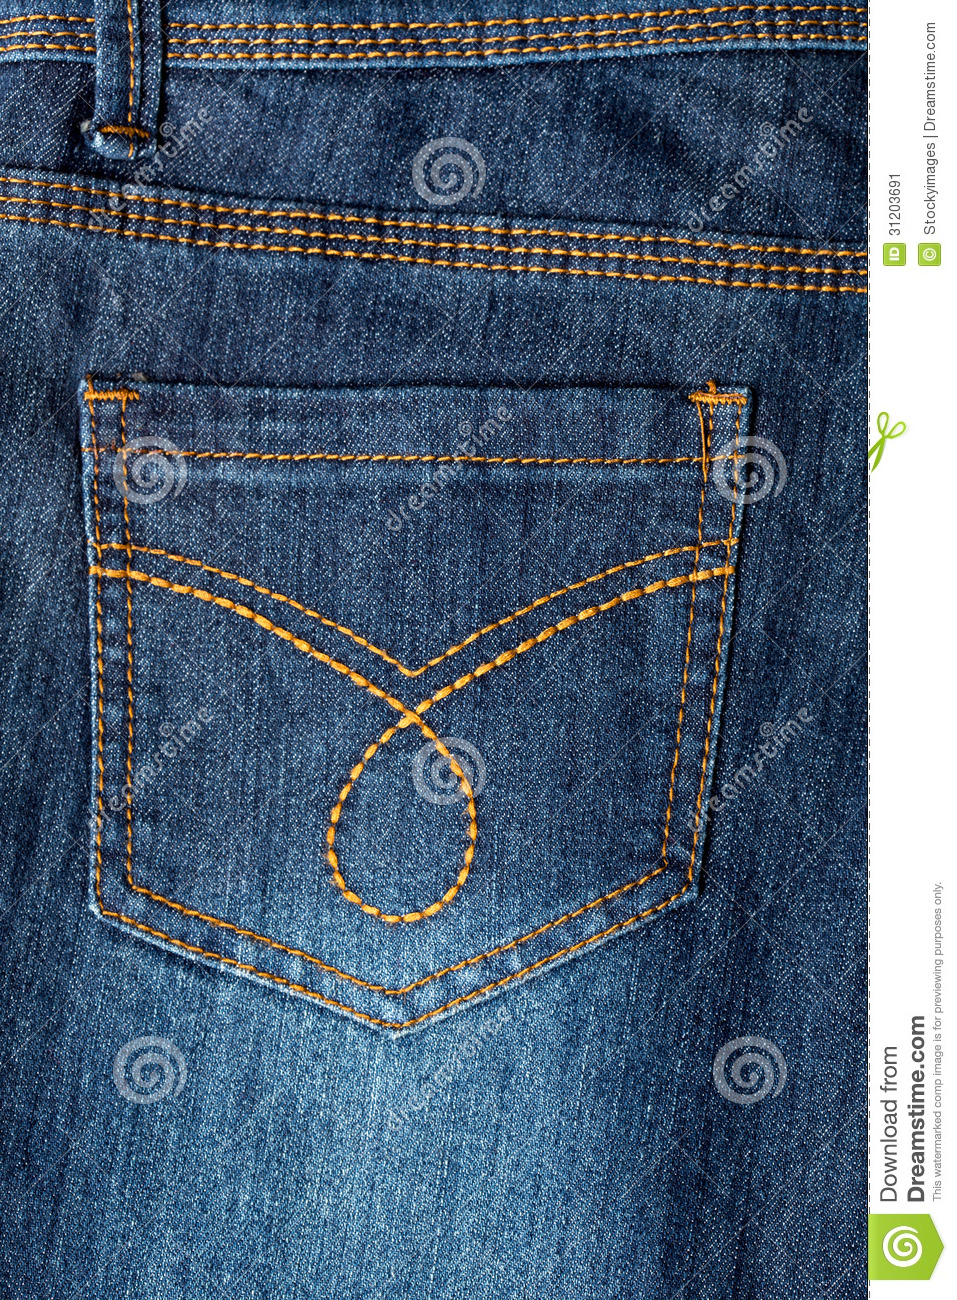 Jeans Back Pocket Texture Jeans Texture With Sea...